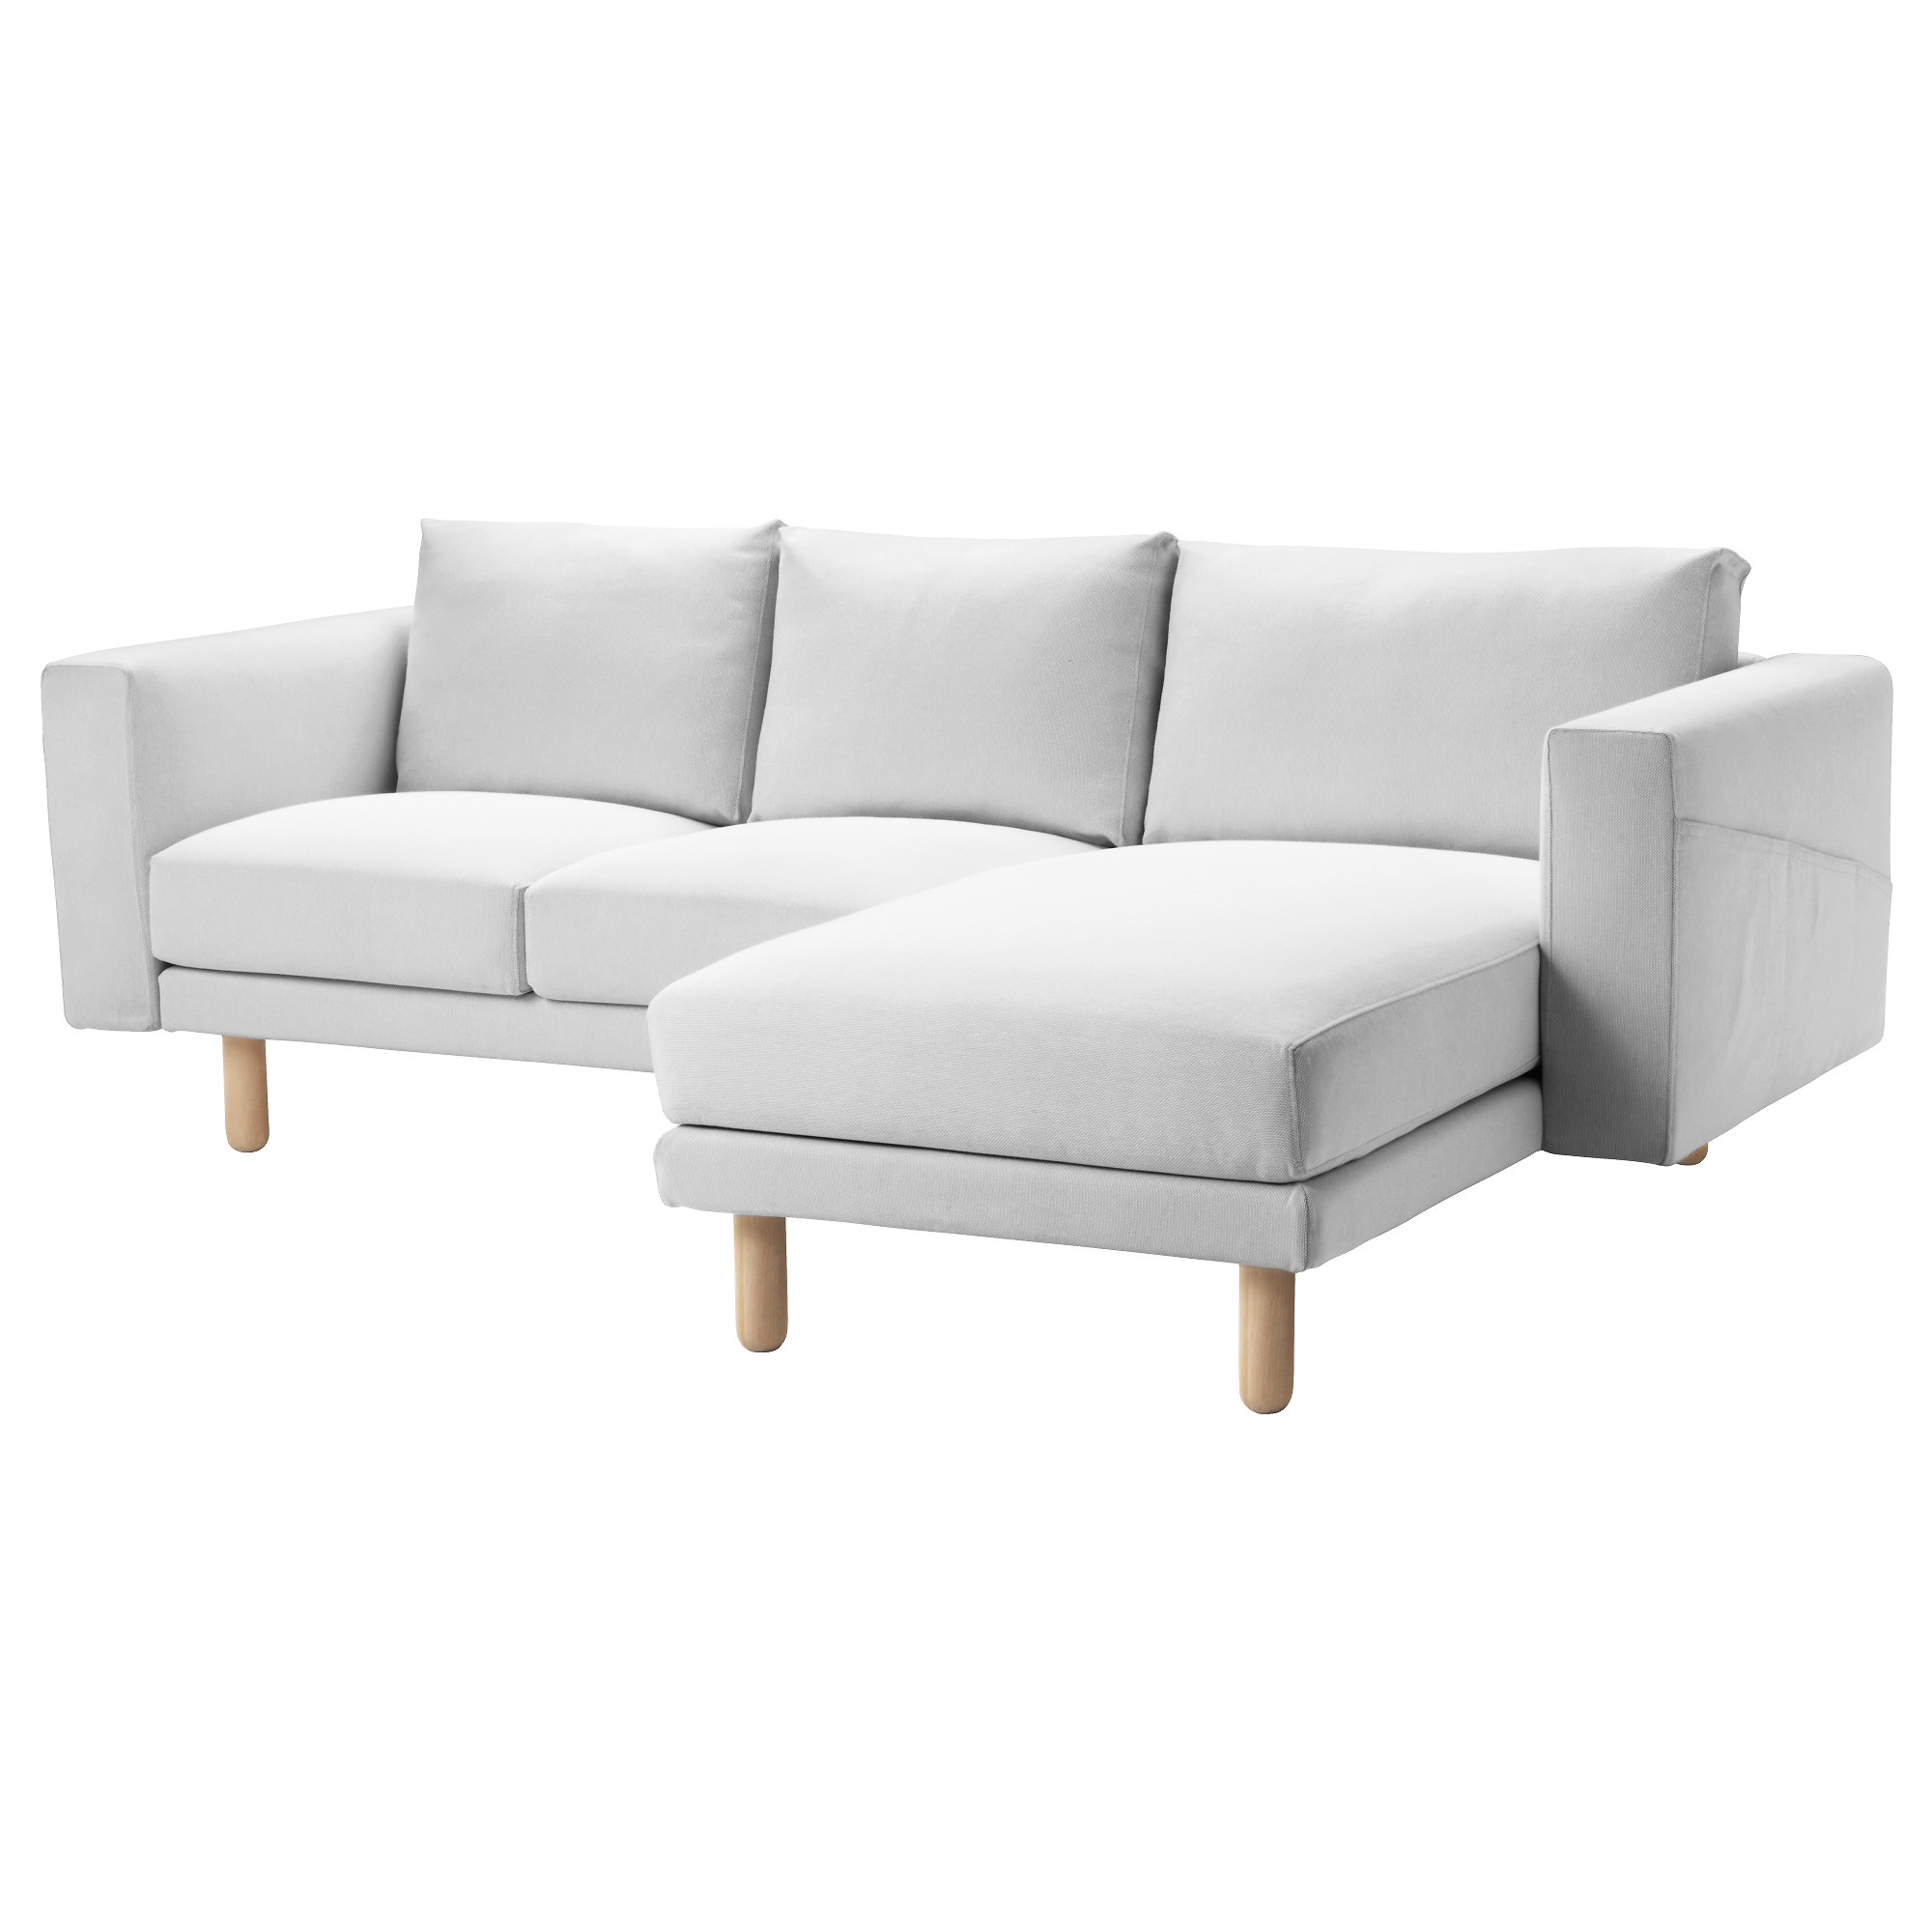 sc 1 st  Ikea : ikea chaise lounge sofa - Sectionals, Sofas & Couches